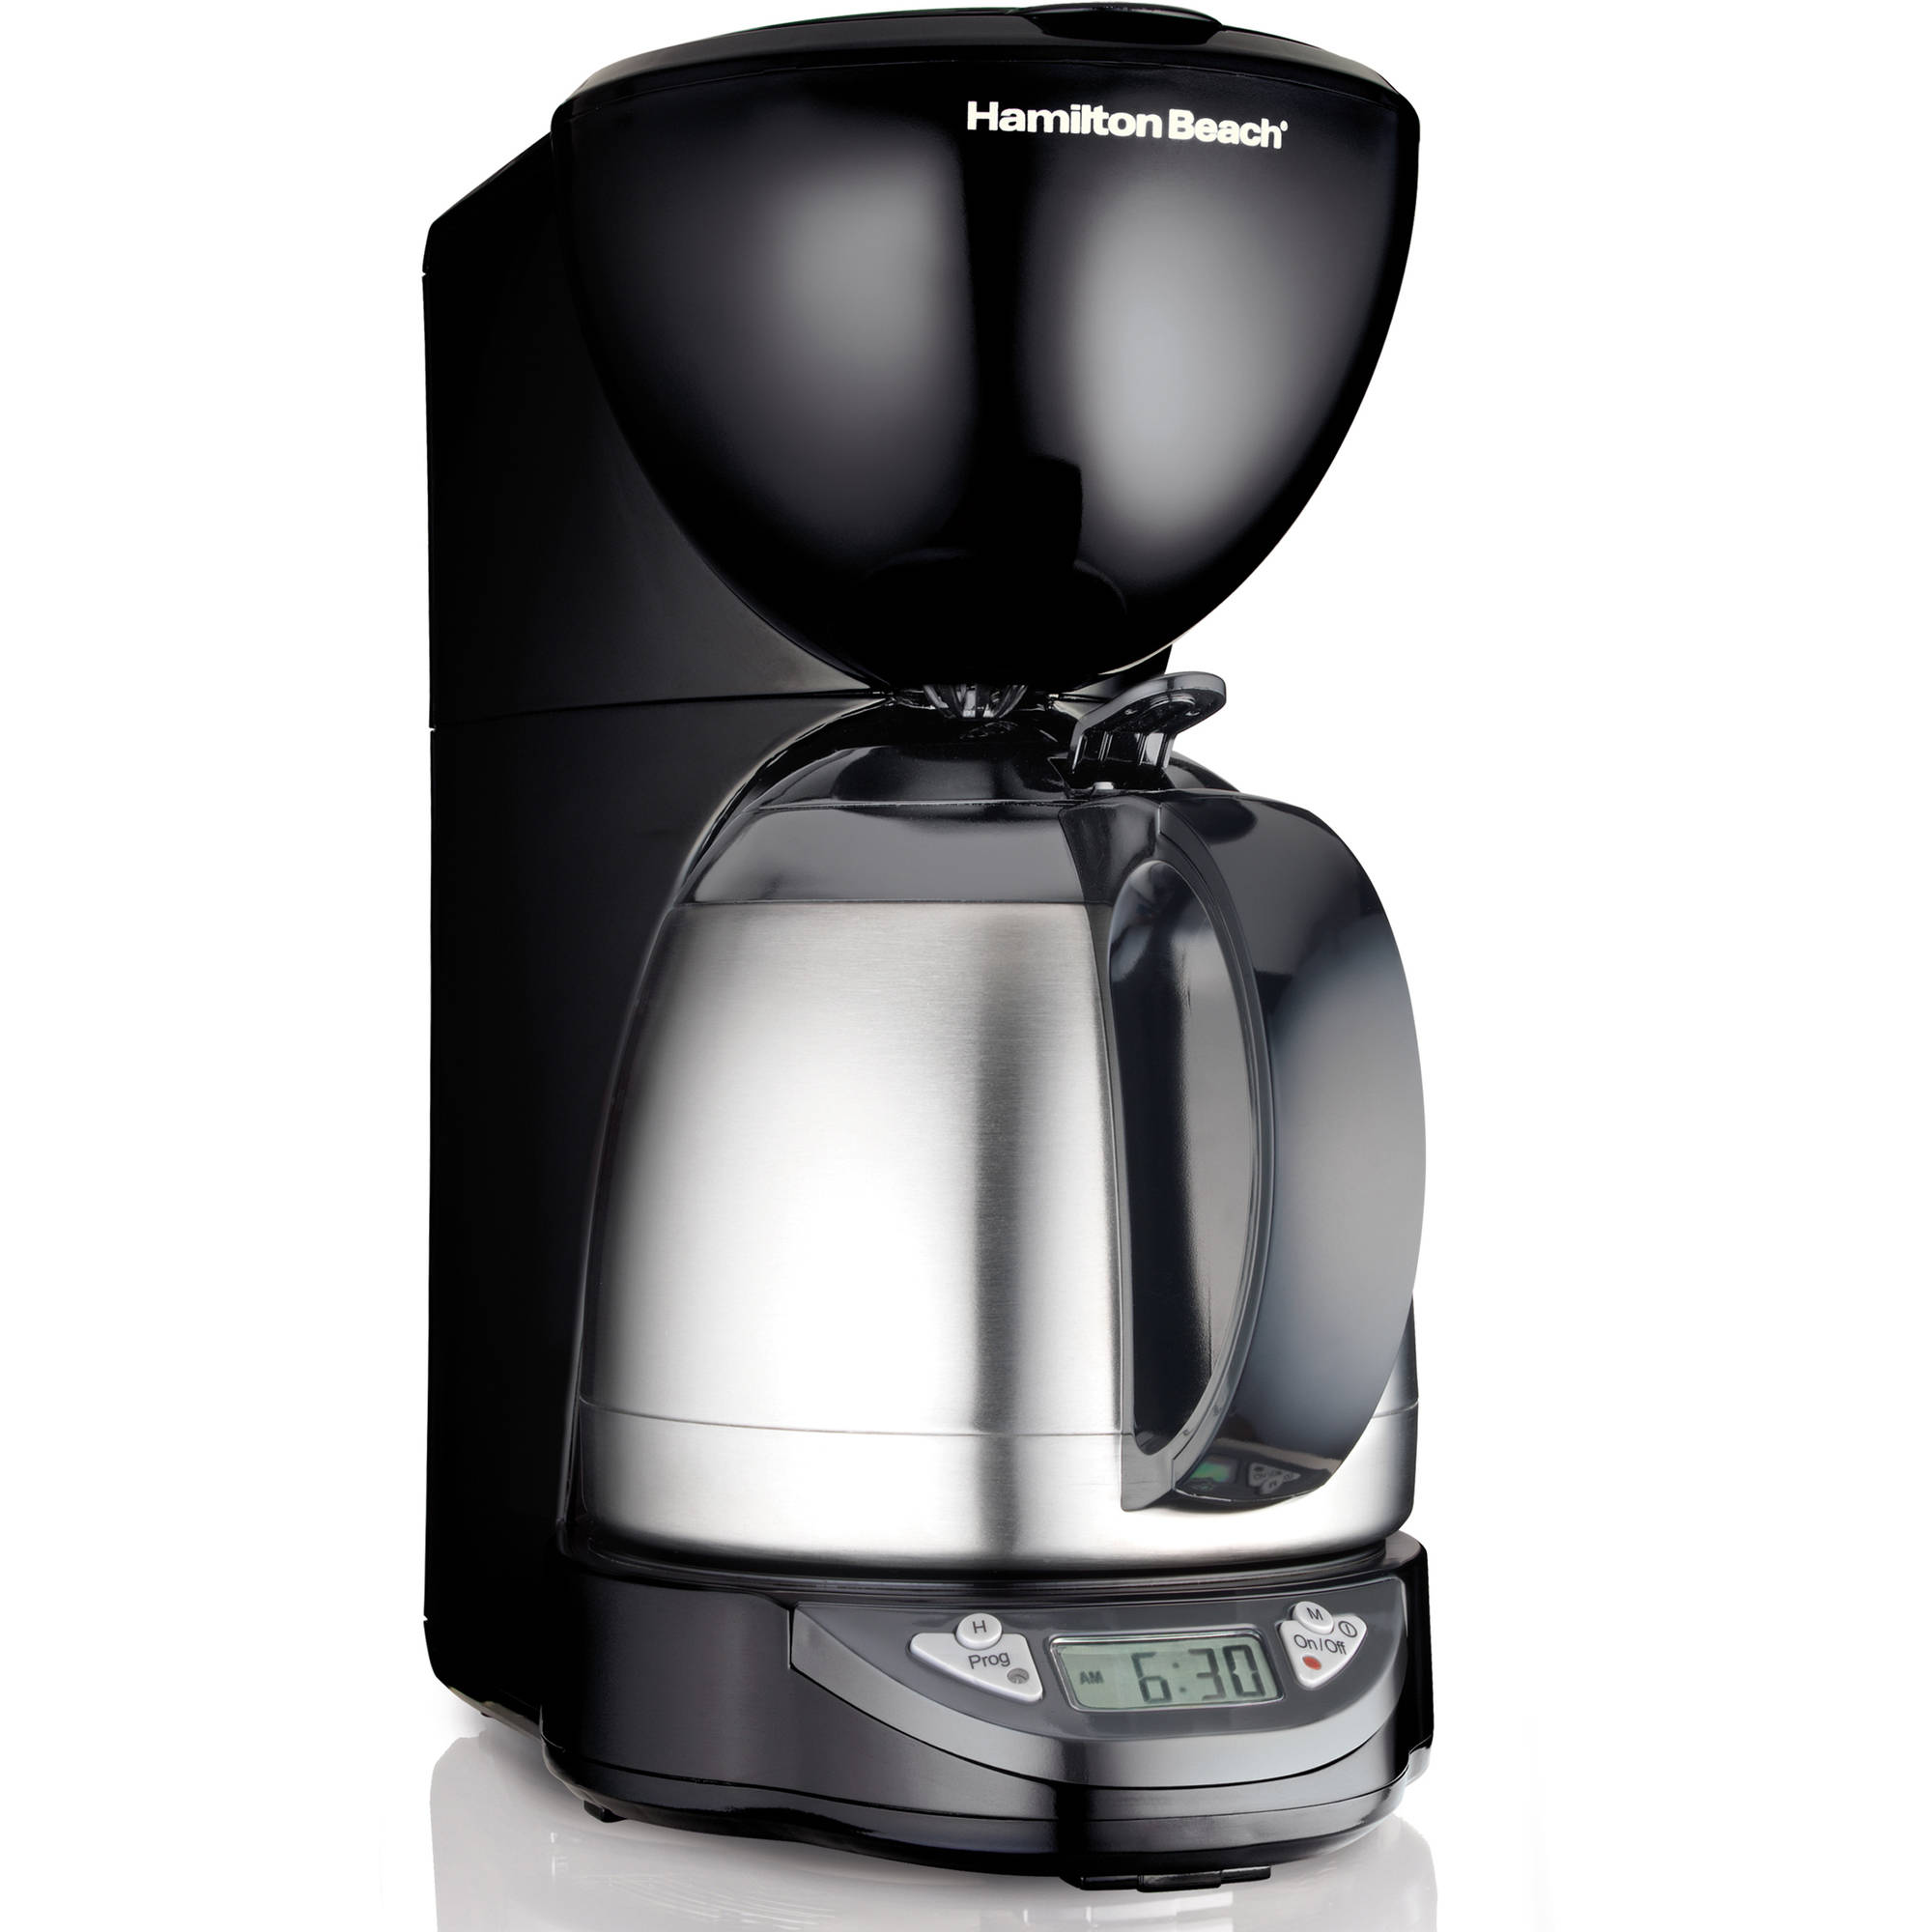 Refurbished Hamilton Beach 10 Cup Programmable Thermal Coffee Maker | Model# R1015